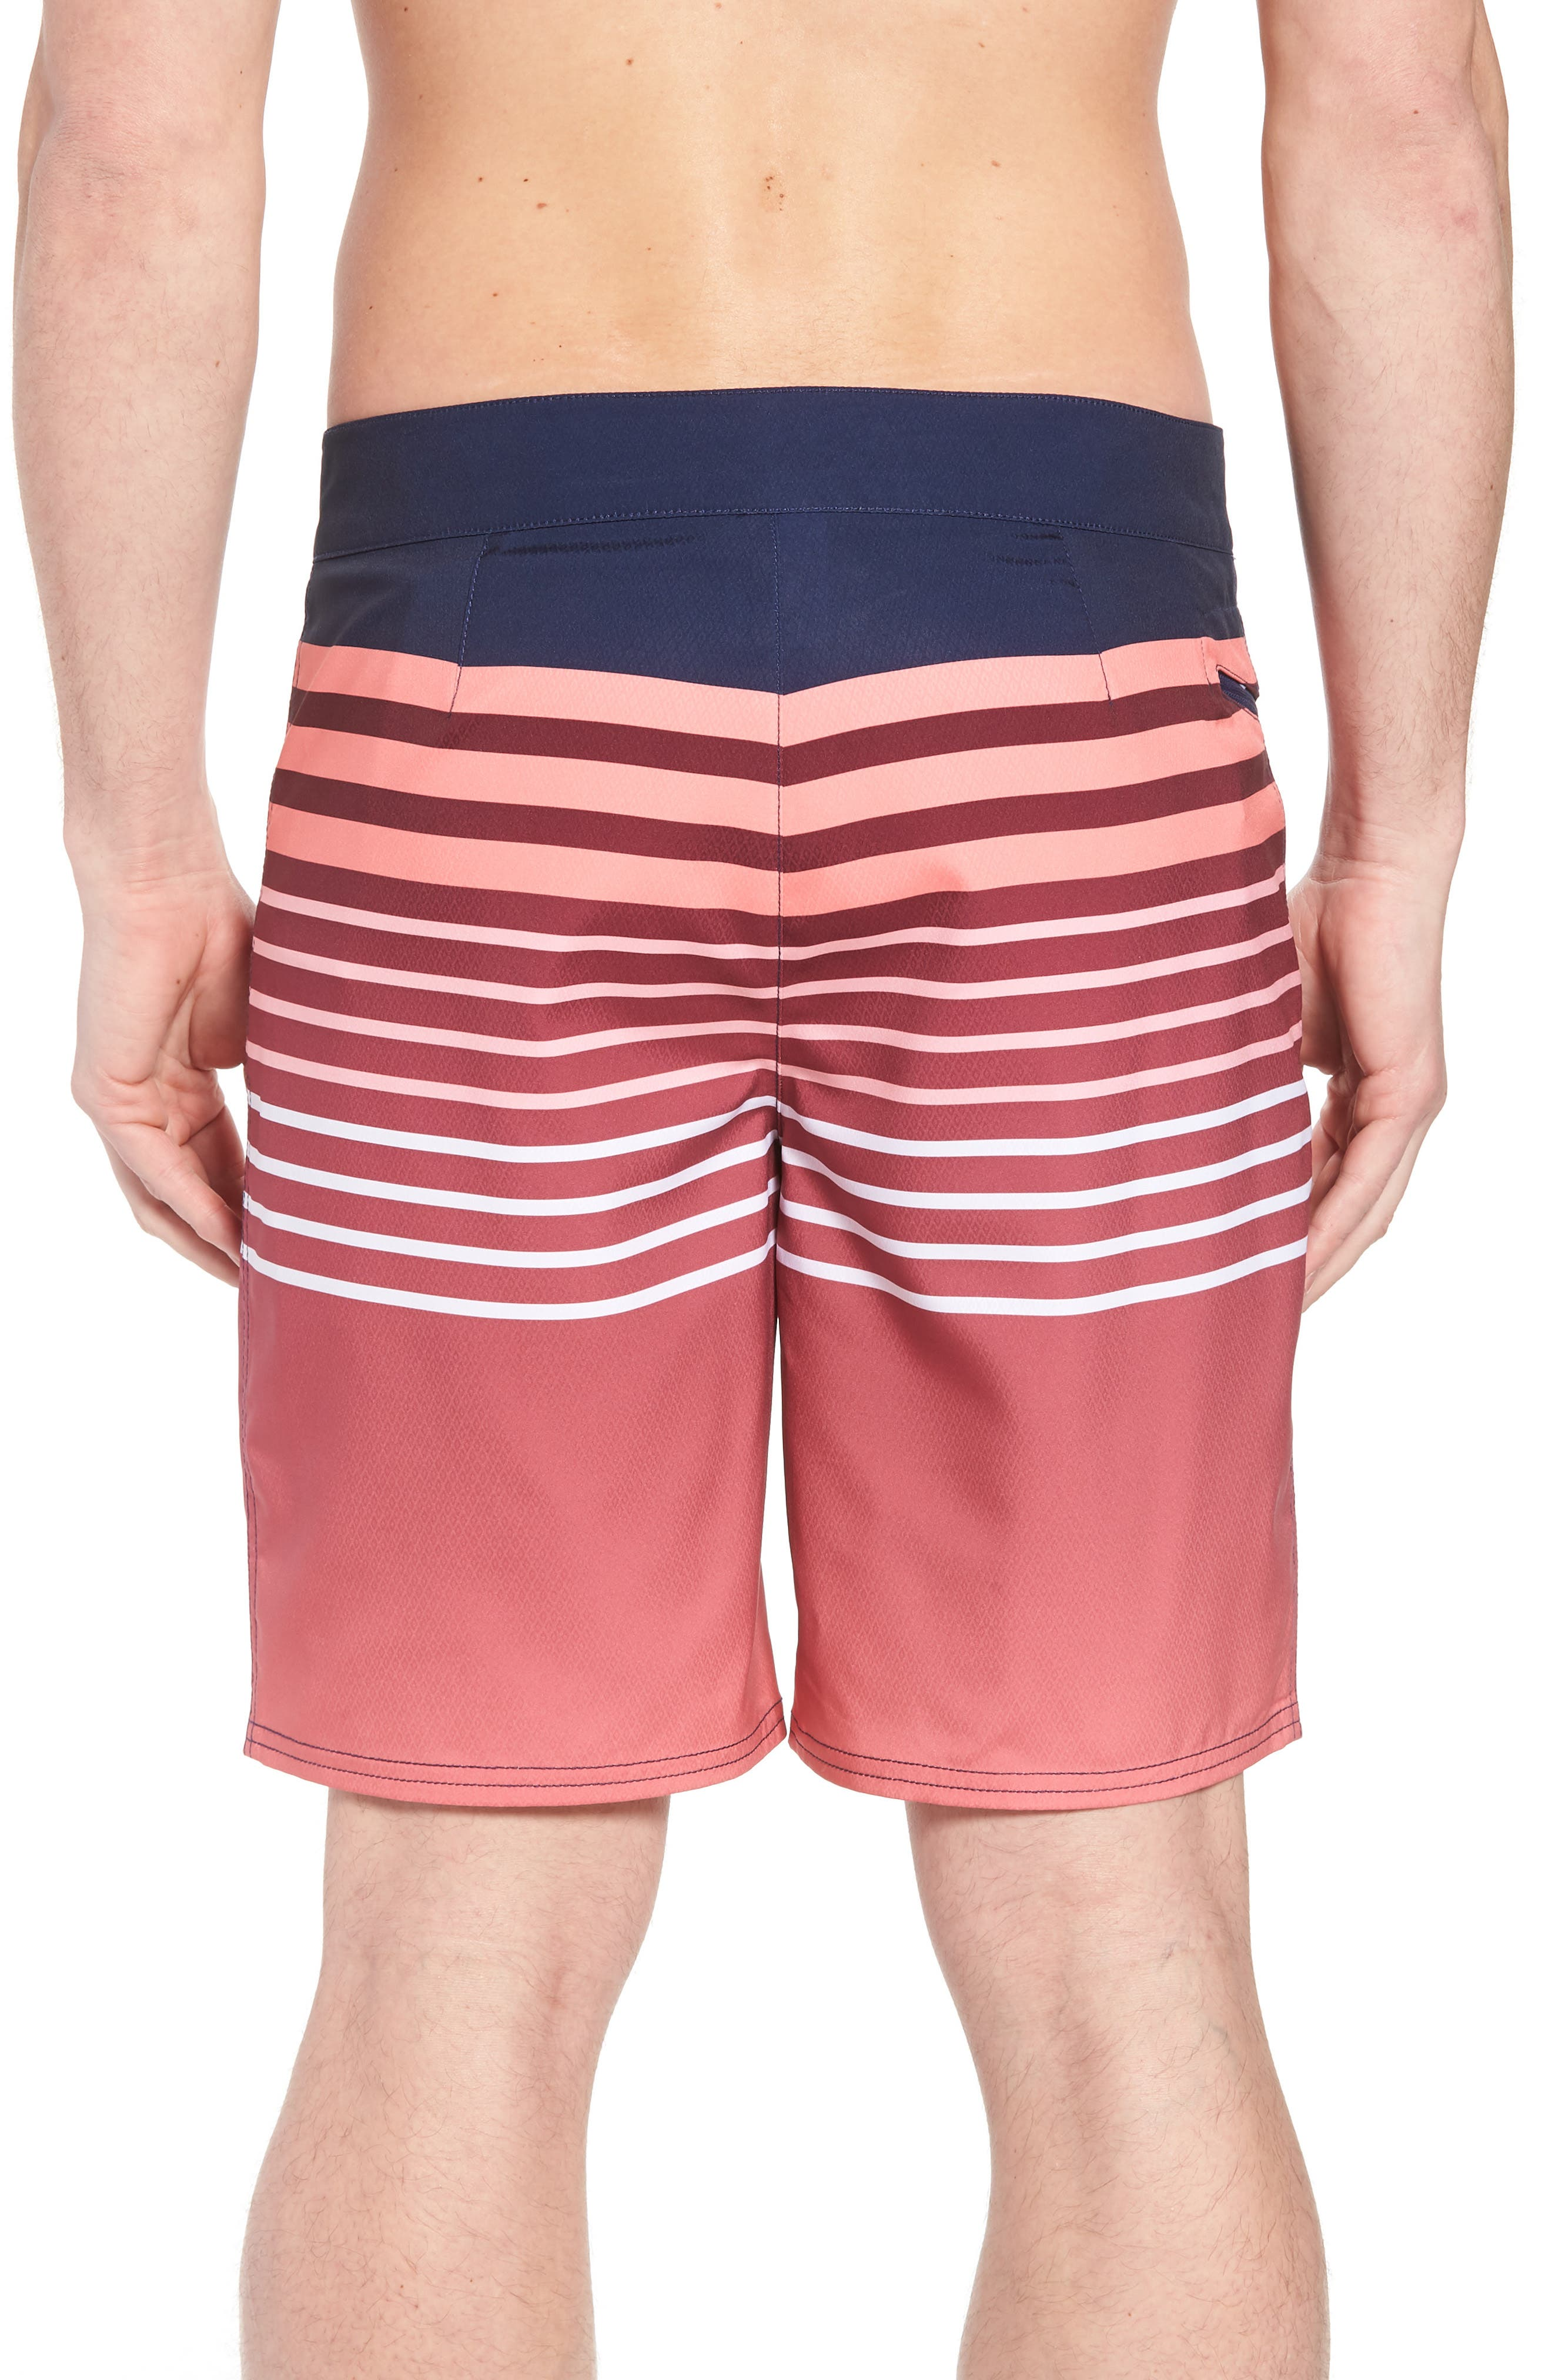 Surflodge Stripe Board Shorts,                             Alternate thumbnail 2, color,                             Jetty Red